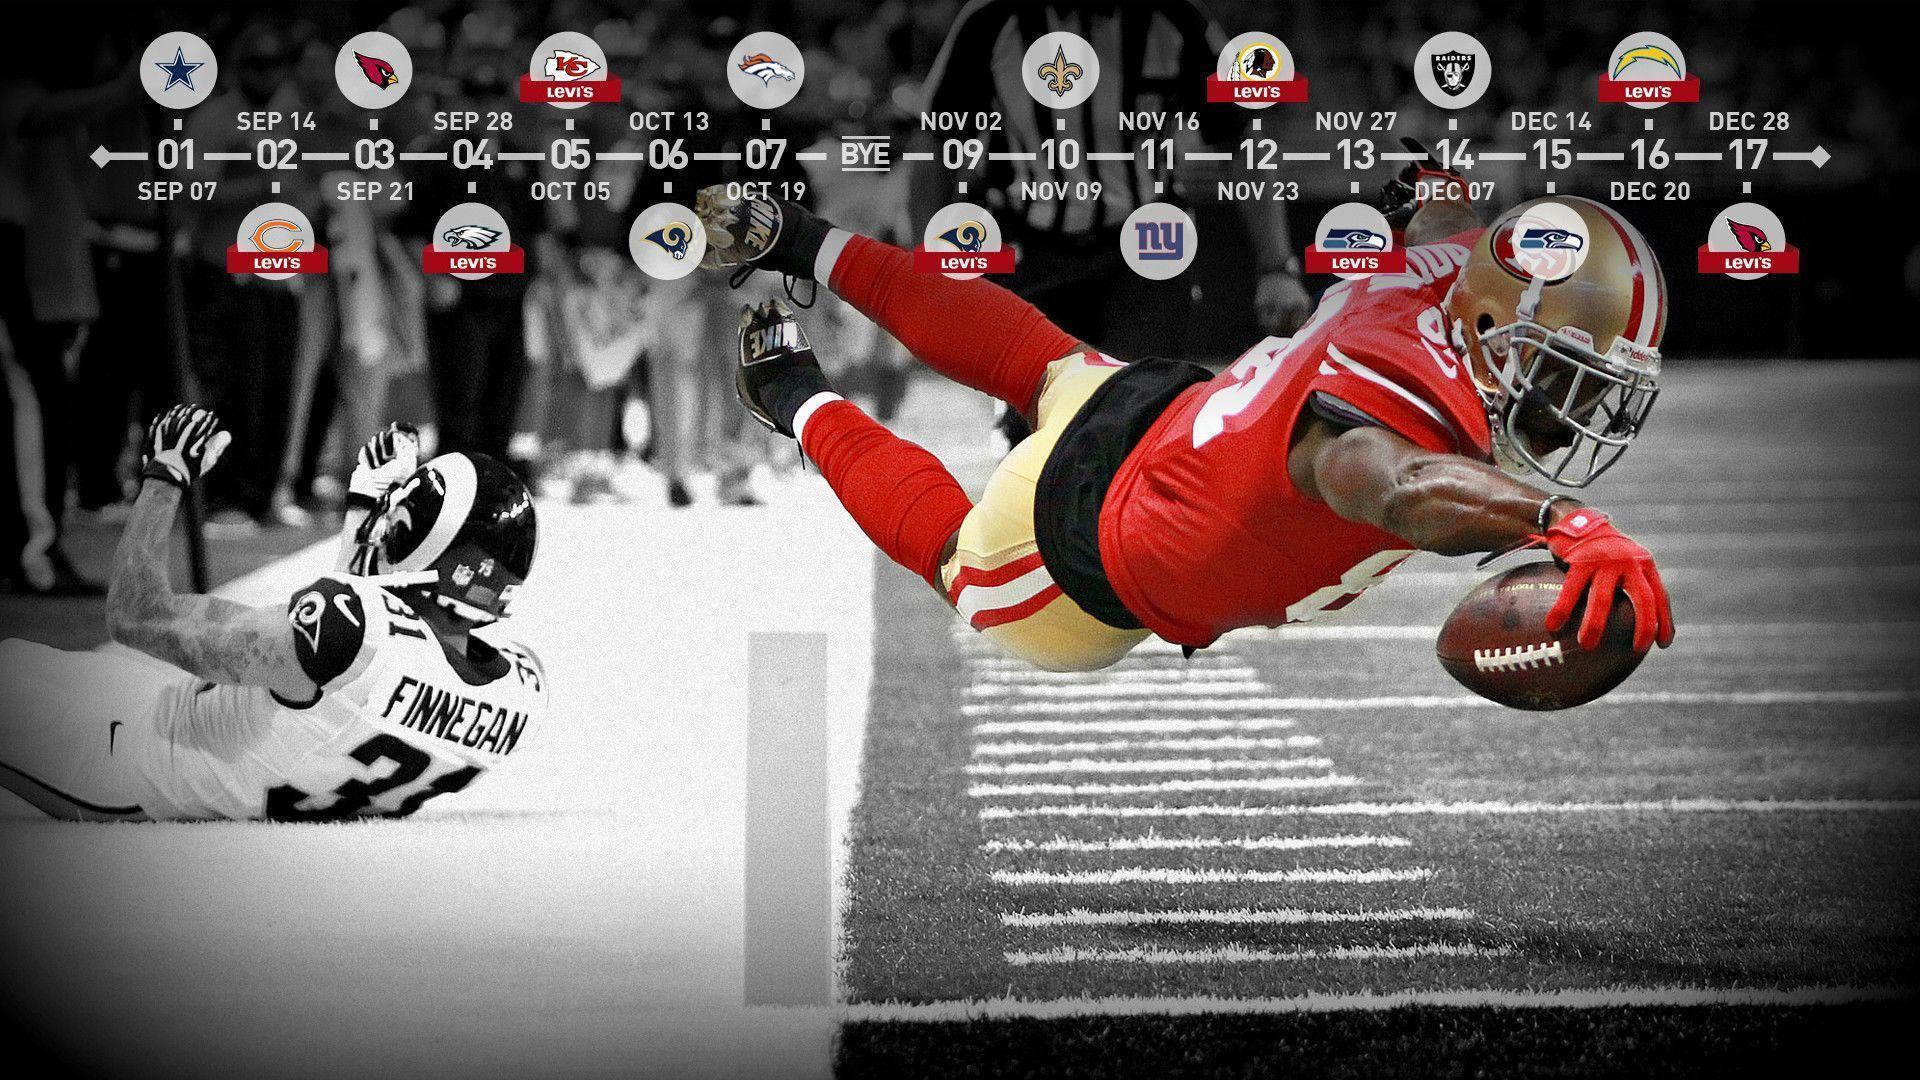 Free 49ers wallpapers your phone wallpaper cave 49ers 2014 schedule cell phone desktop wallpaper google voltagebd Gallery